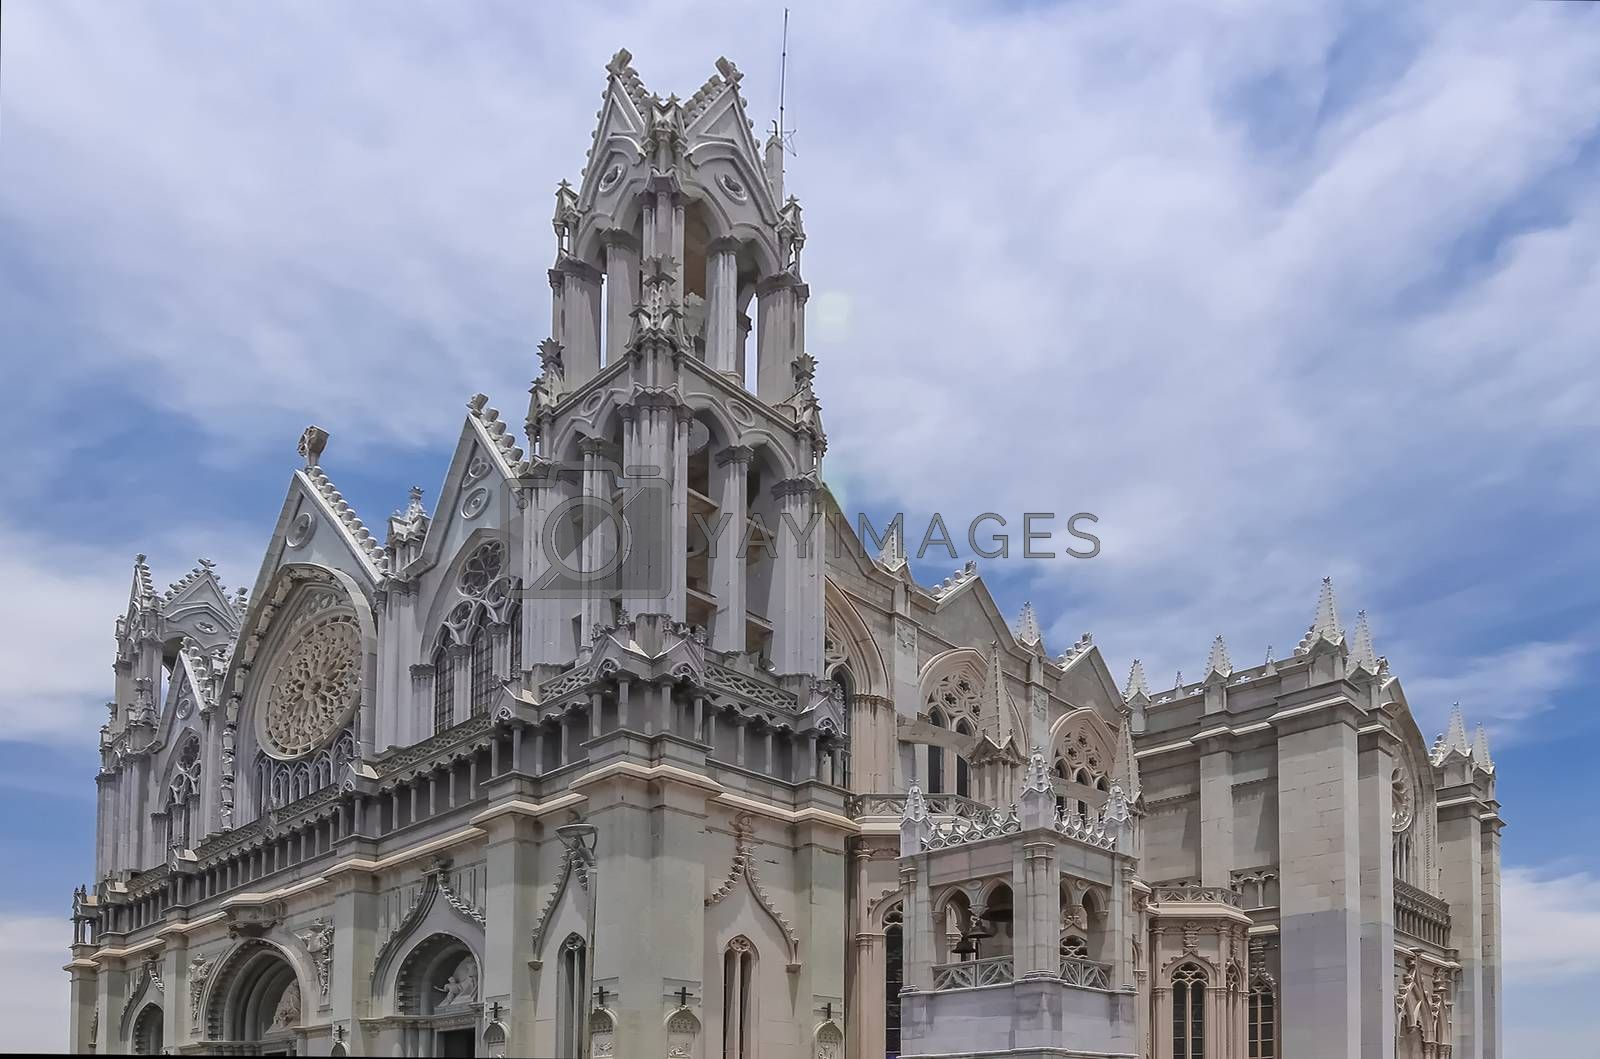 The Expiatory Temple of the Sacred Heart of Jesus, construction began in 1921 and was completed in 2012 with the visit of Pope Benedict XVI